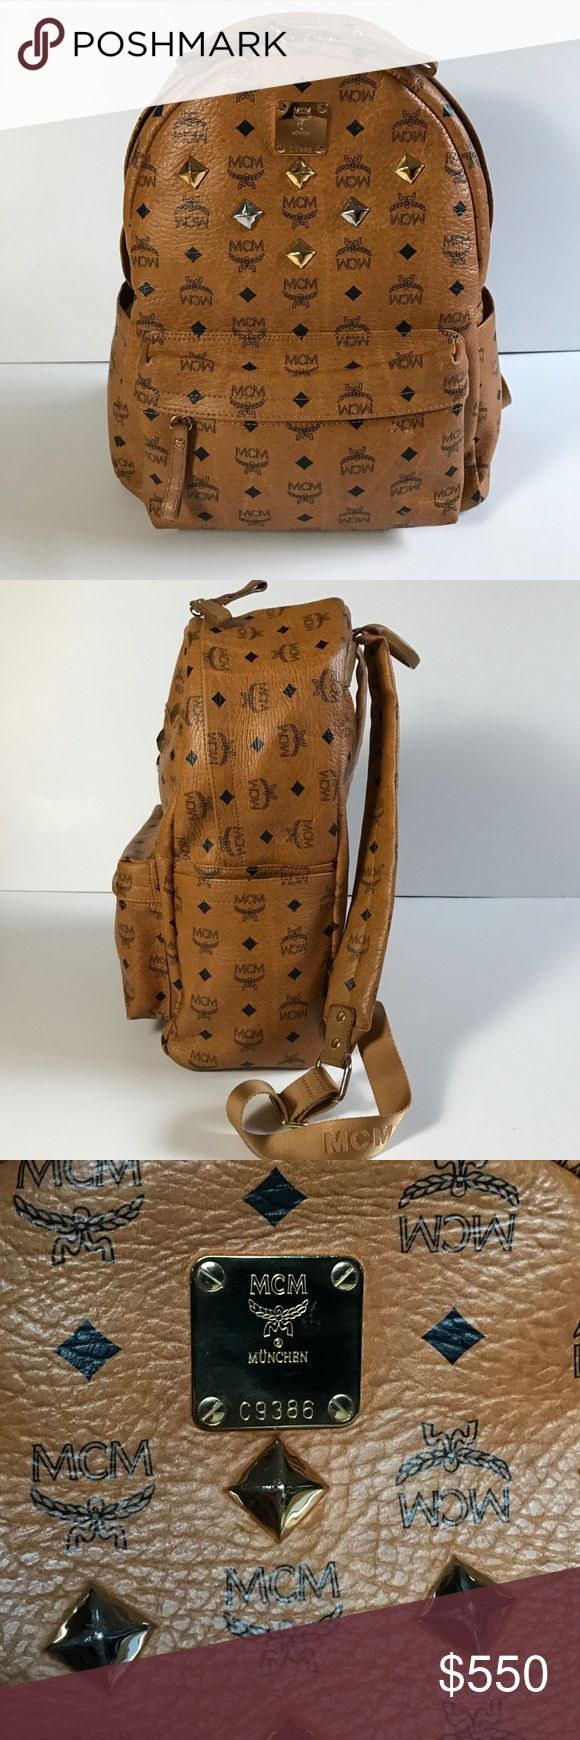 Authentic MCM Stark Crown & Stud Backpack Cognac Genuine / 100% Real  MCM Double Stark Studded Backpack Book Bag Rucksack Size: Medium Color: Cognac (brown) Previously authenticated by TheRealReal Condition: 8.75/10 few marks from jeans on hip area.  Like us on Facebook @modabyboutique or search for Moda Boutique SF MCM Bags Backpacks